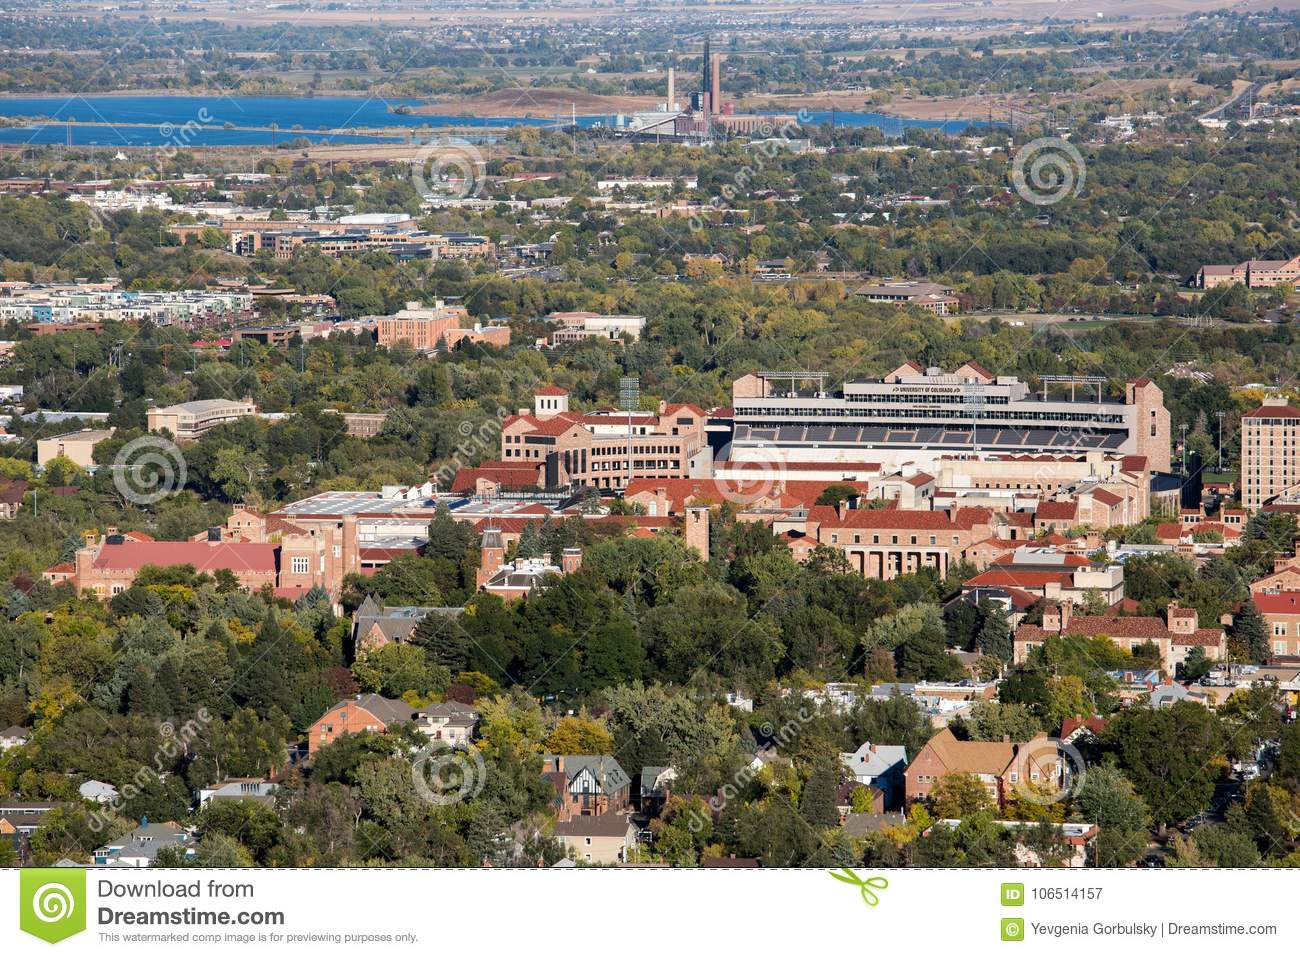 Boulder city University, Colorado